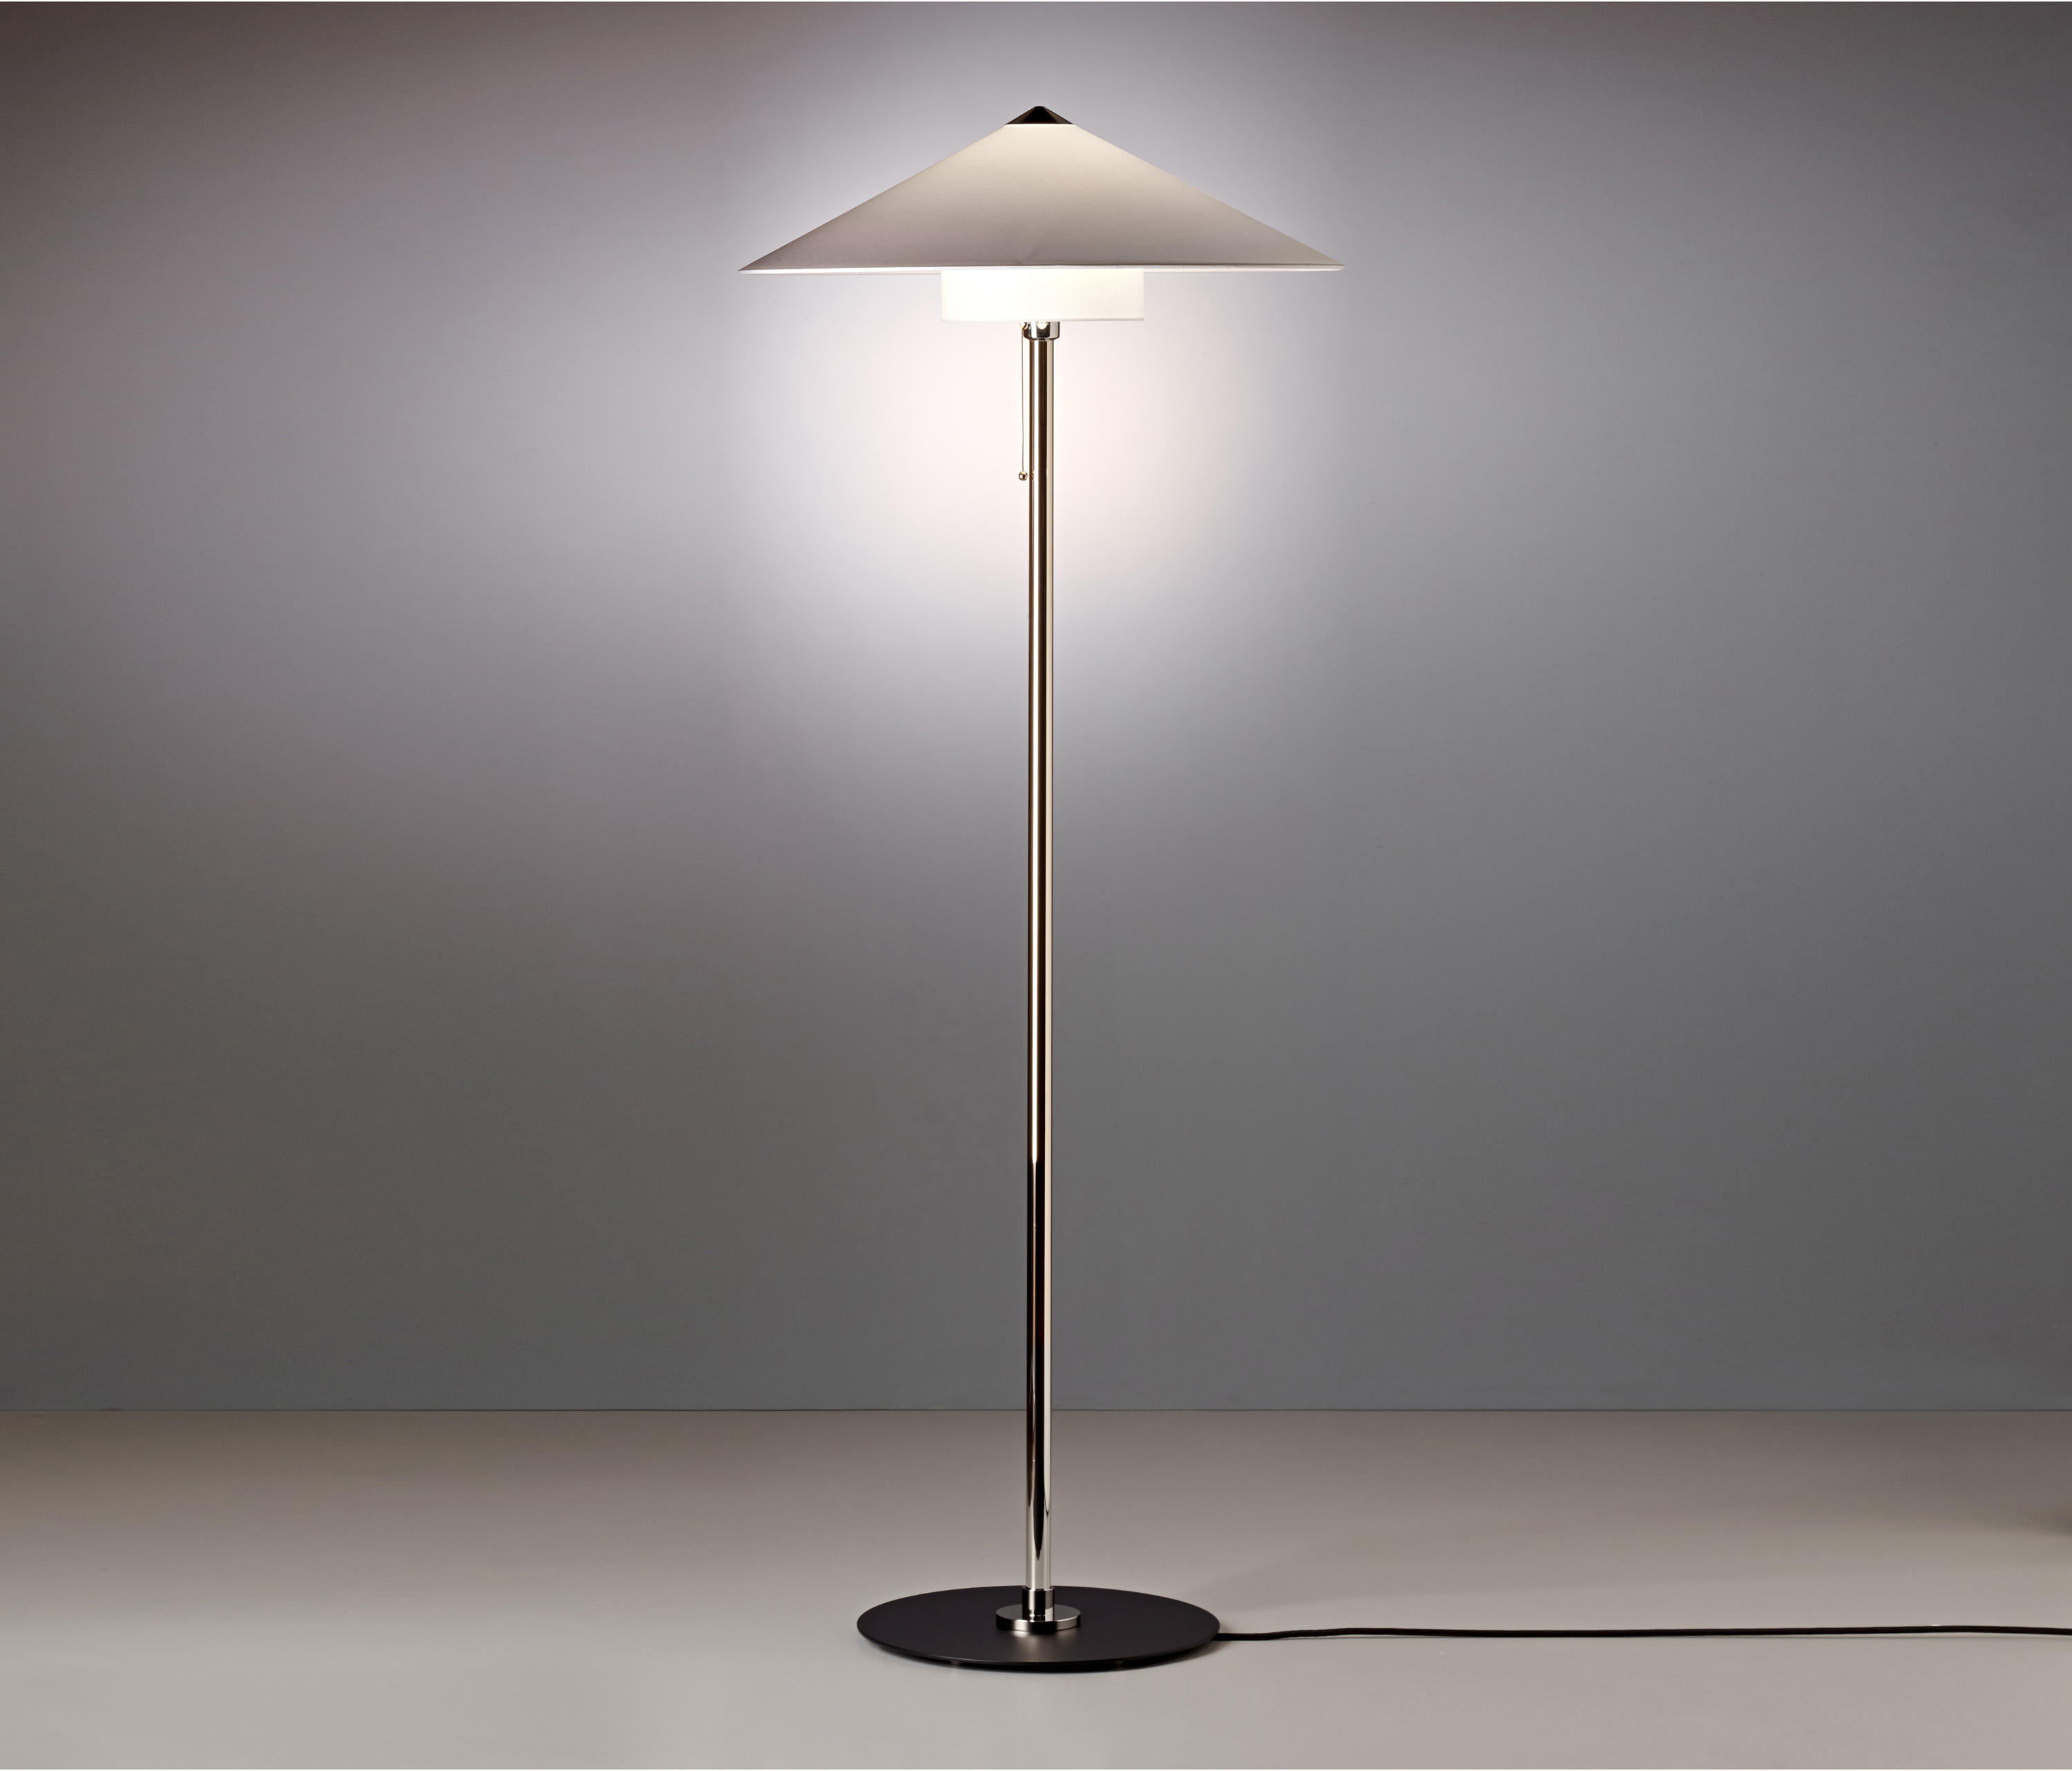 Wstl30 floor lamp free standing lights from tecnolumen architonic wstl30 floor lamp by tecnolumen free standing lights aloadofball